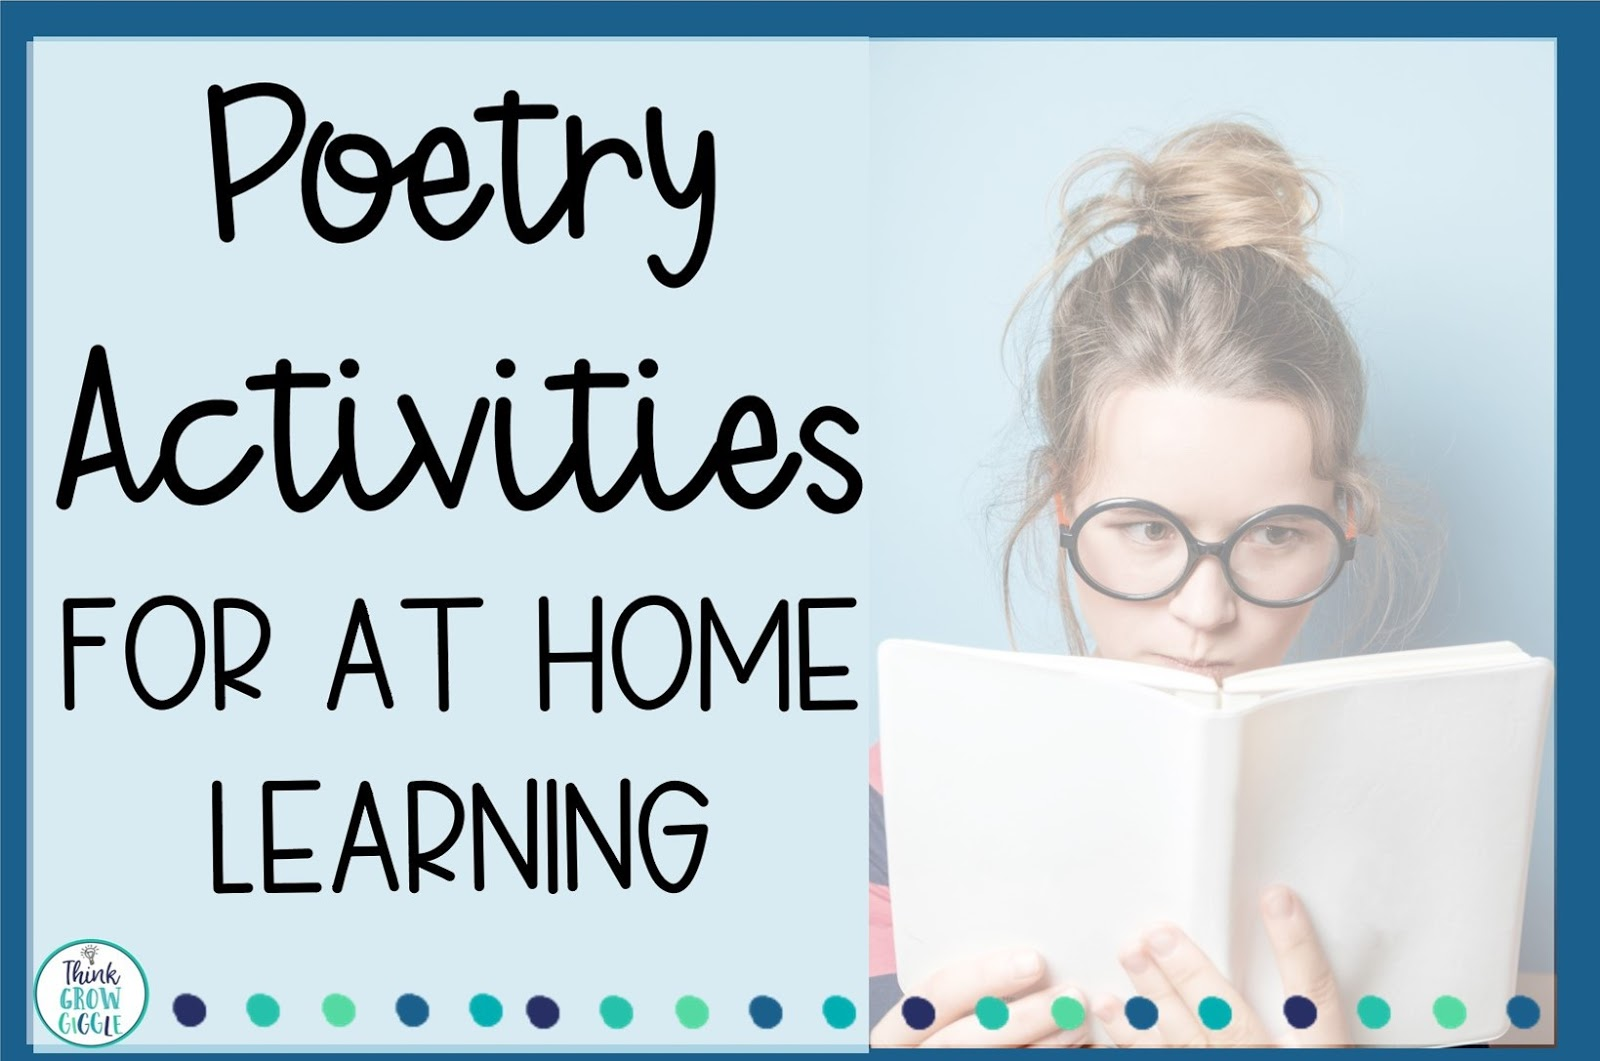 hight resolution of 7 Poetry Activities for At Home and Classroom Learning - Think Grow Giggle